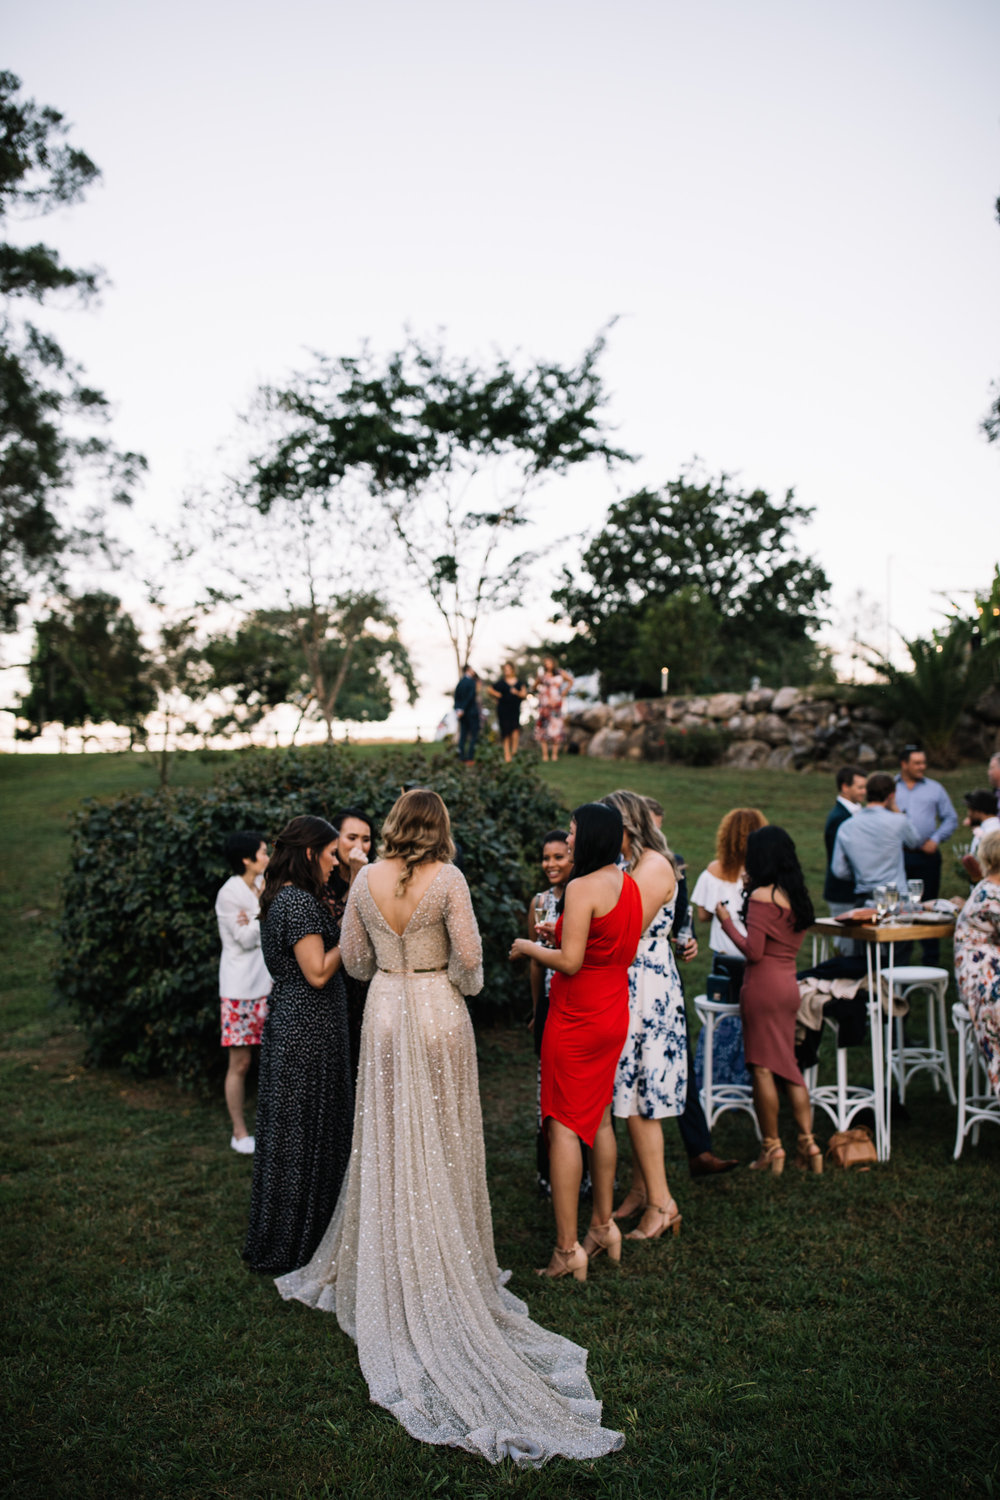 Tipi Wedding Styling Gold Coast Byron Bay23.jpg